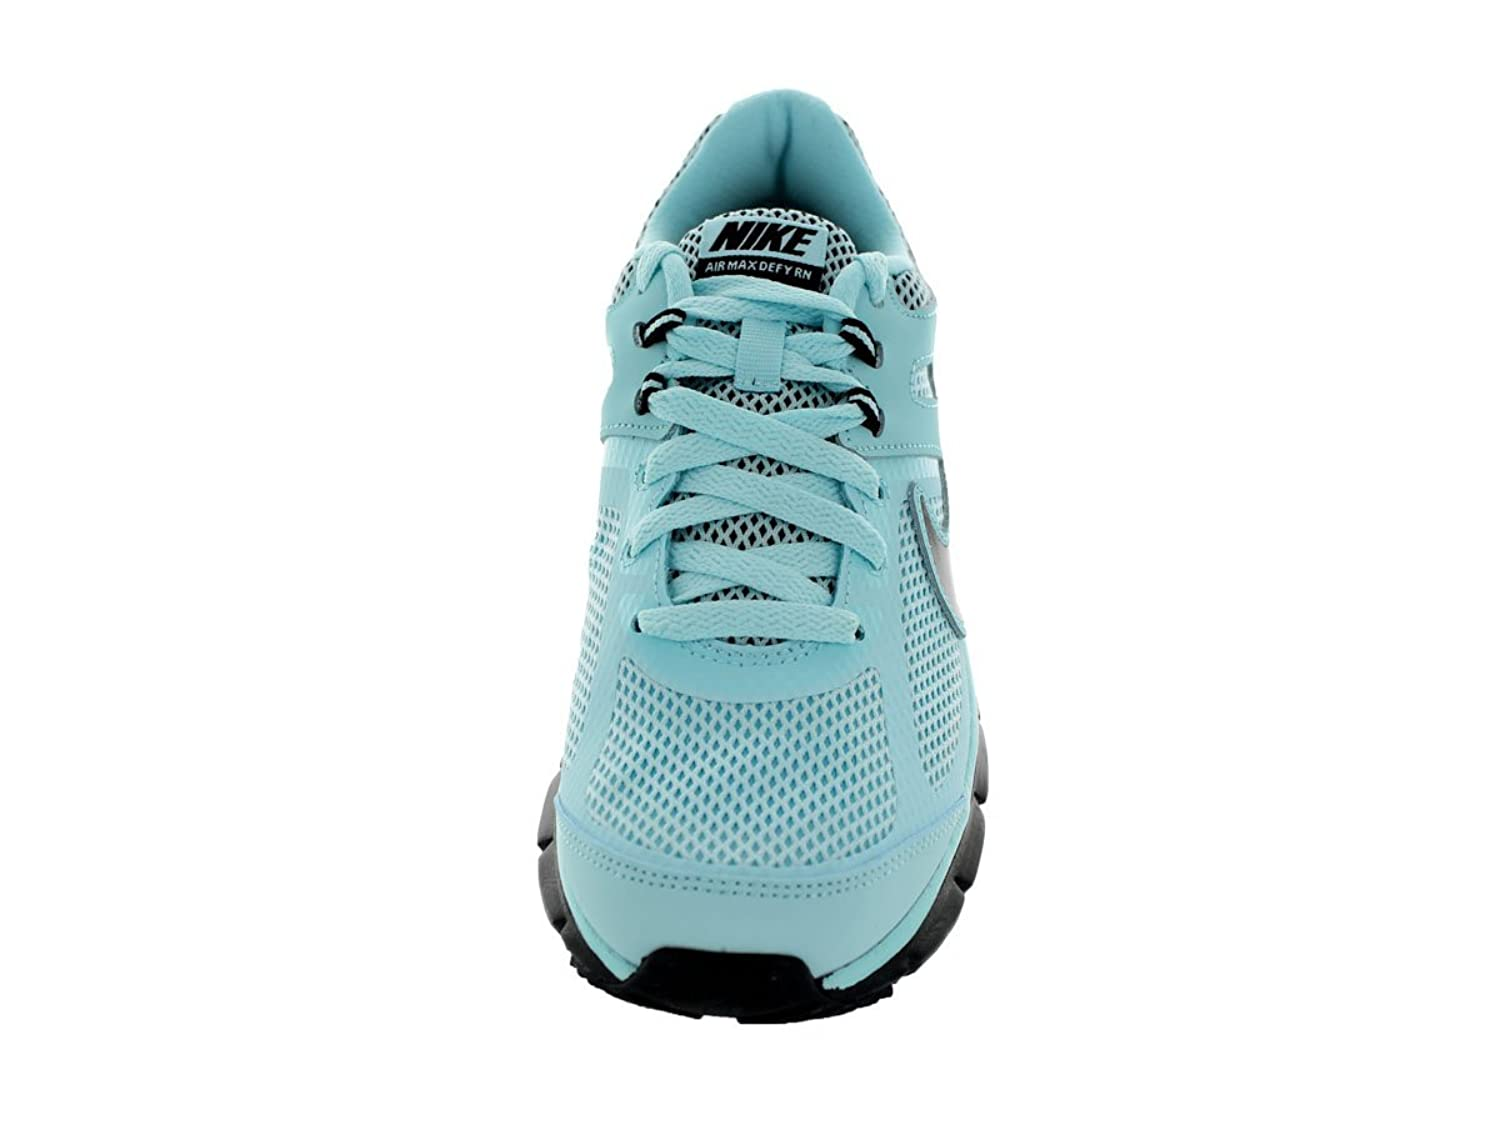 meet d3a3a 634c4 ... responsive as KD. Zoned Flyknit provides breathability and stretch, while  Nike Zoom Air cushioning returns impact energy back to your. nike air max  defy ...